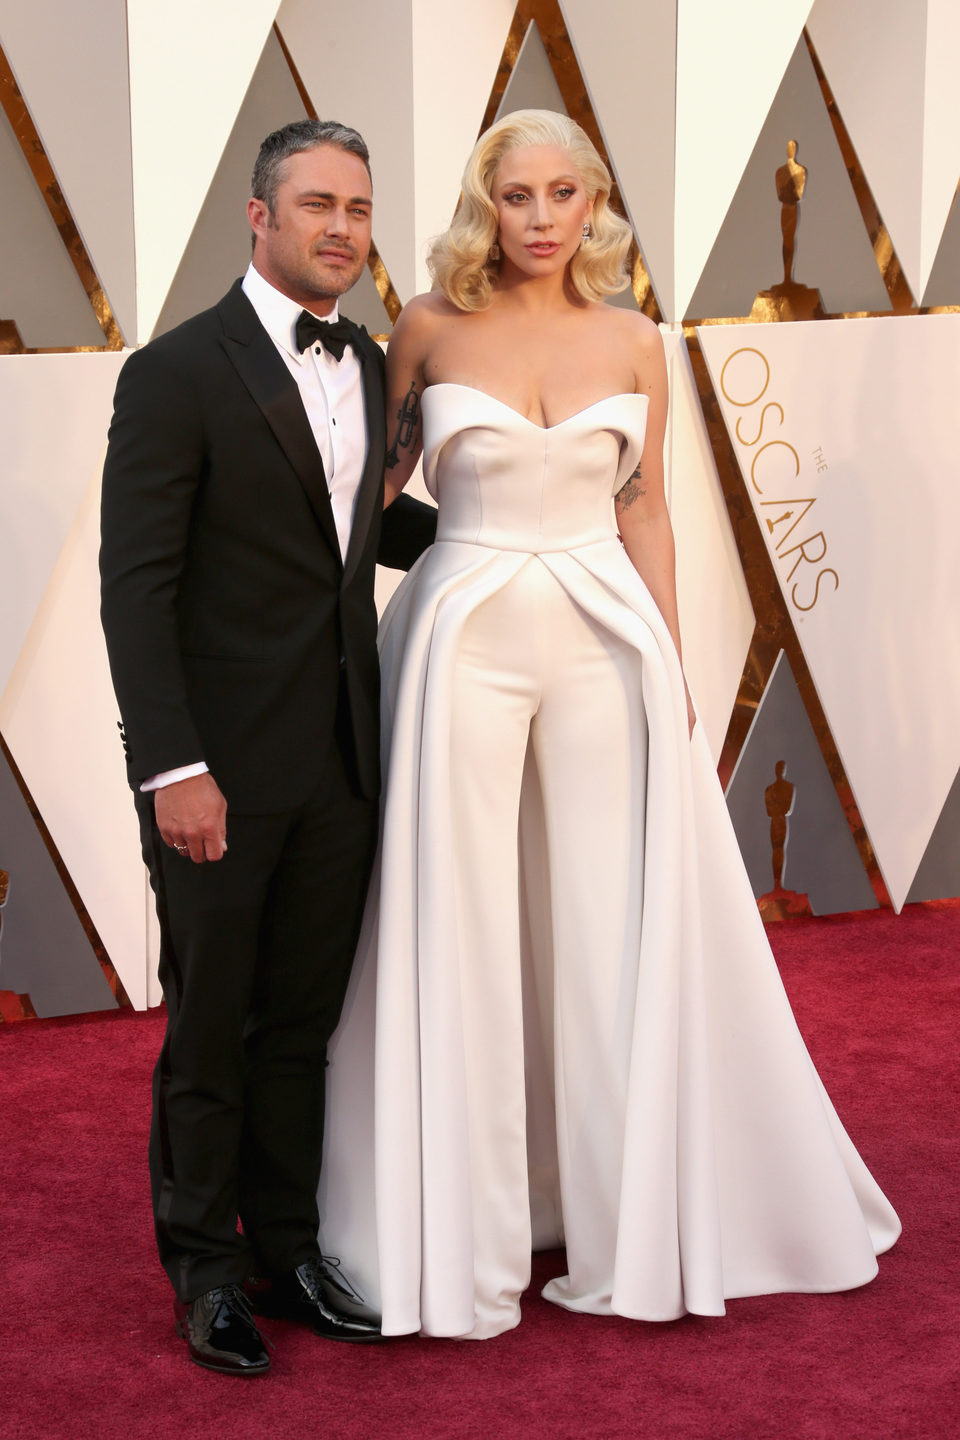 Taylor Kinney and Lady Gaga at the Oscars 2016 red carpet